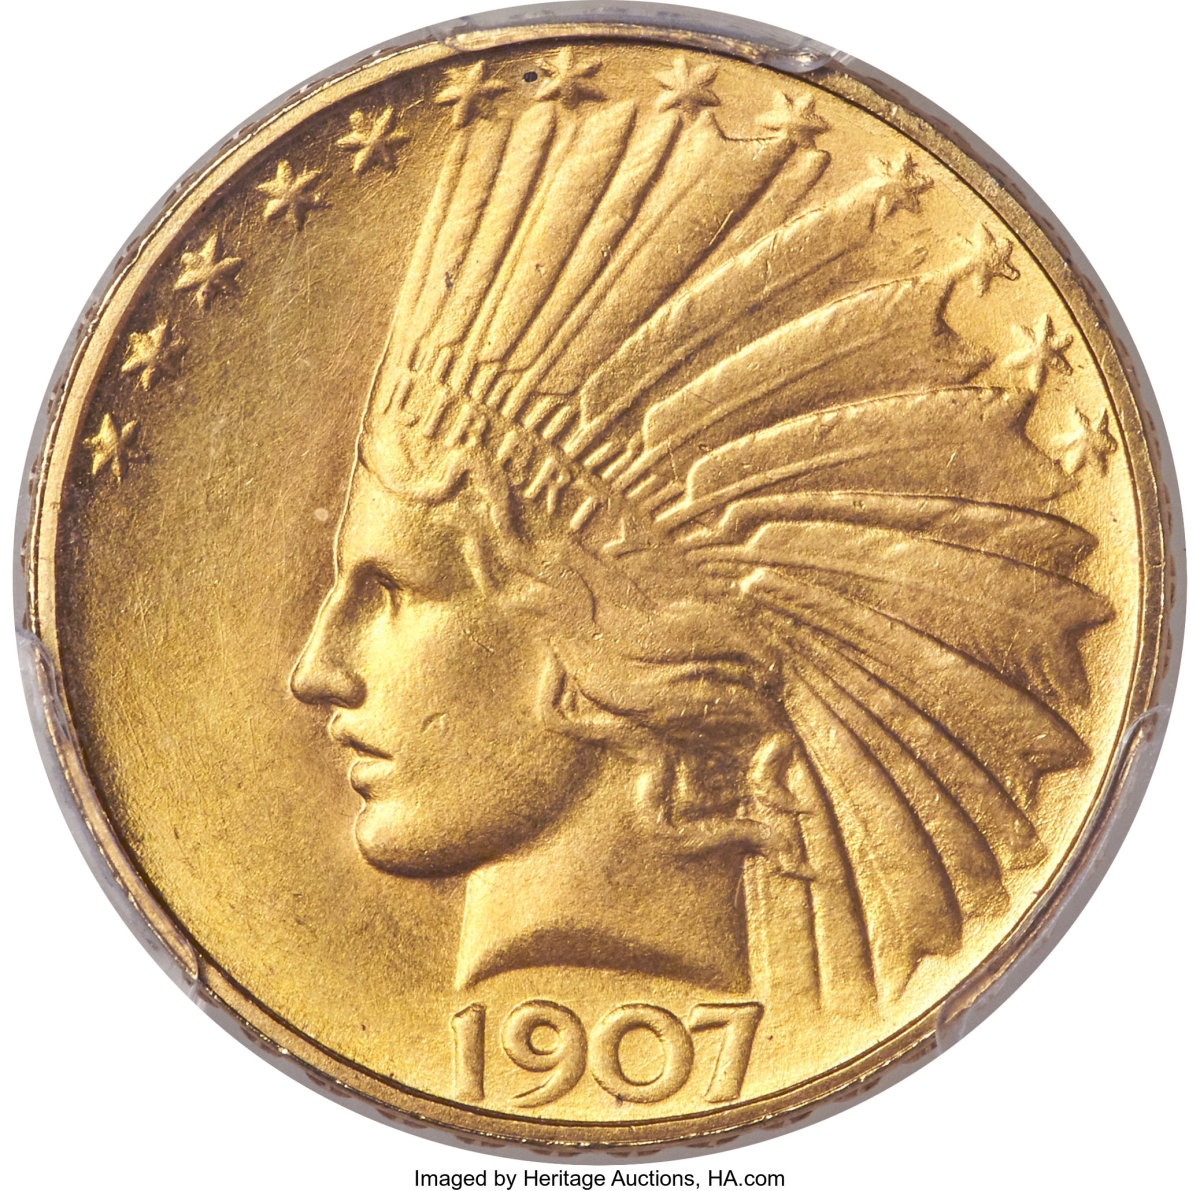 With a final selling price of $240,000, this 1907 rolled rim Indian eagle is one of the rarest issues in the series. The example sold here was graded MS64+ PCGS. CAC. (Image courtesy of Heritage Auctions)